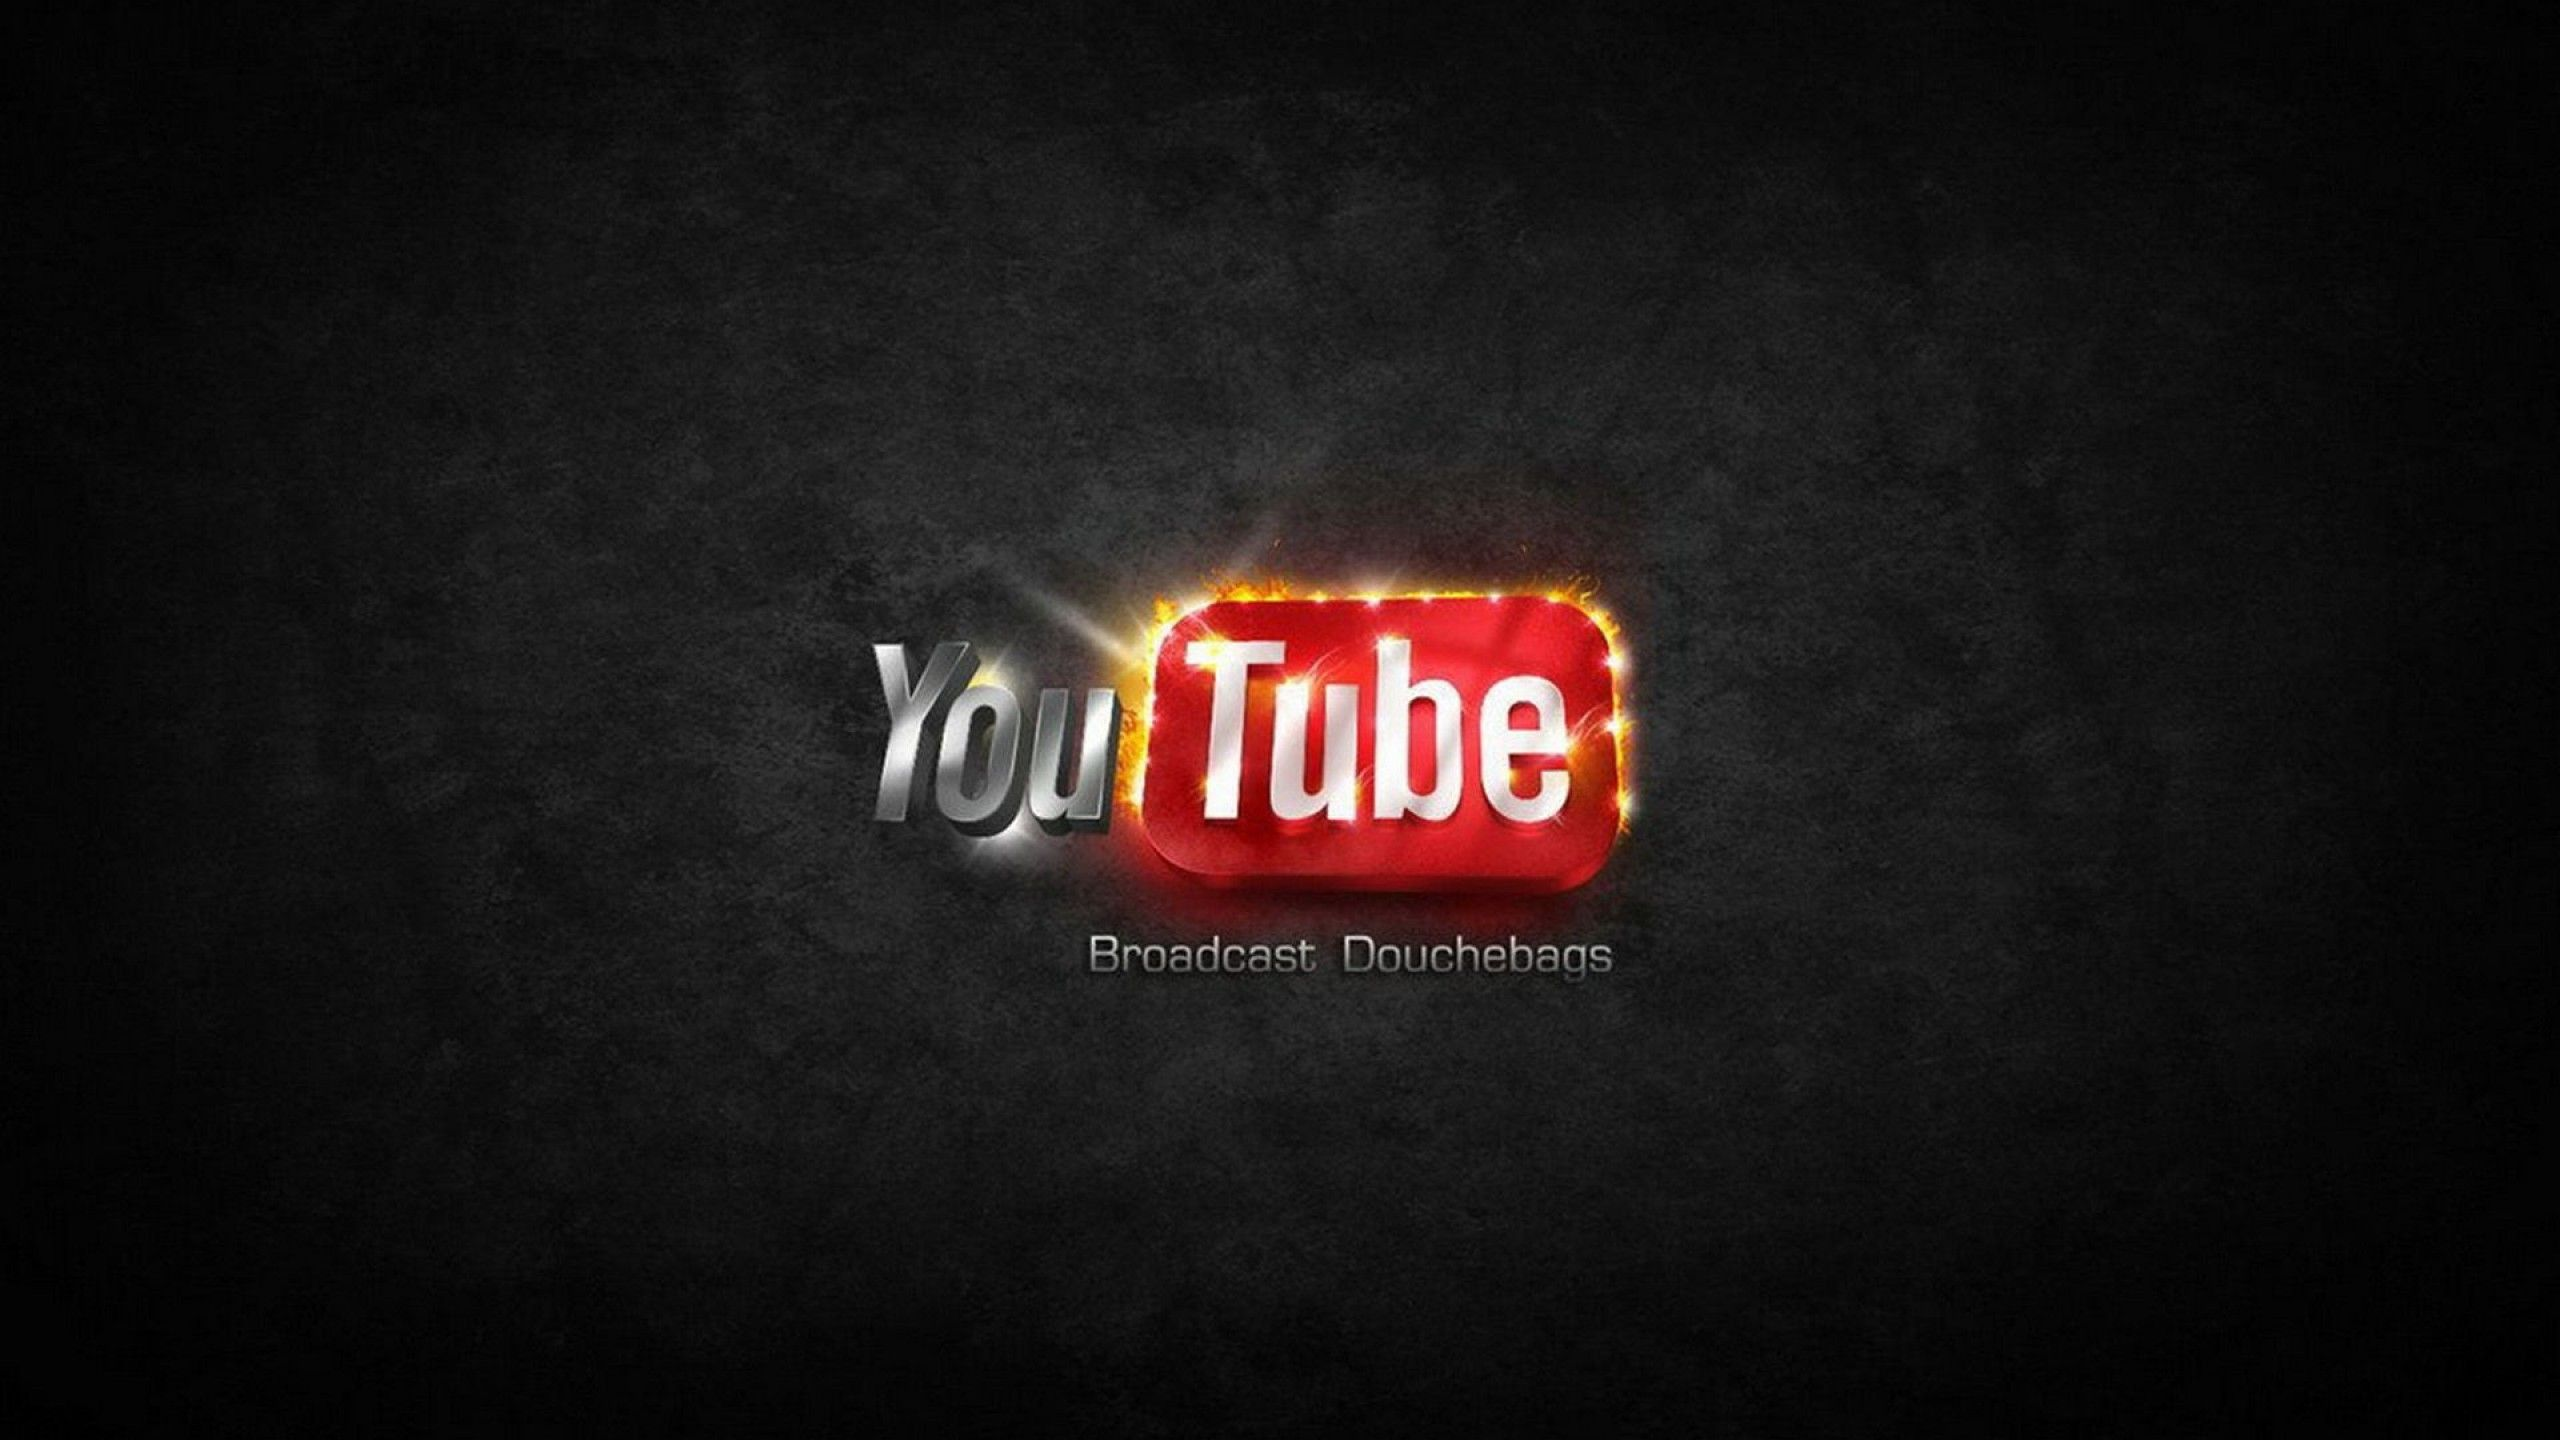 2560x1440 Search Results For Depraved Wretch Wallpaper Adorable Wallpapers Logo Tasarimi Youtube Fotograf